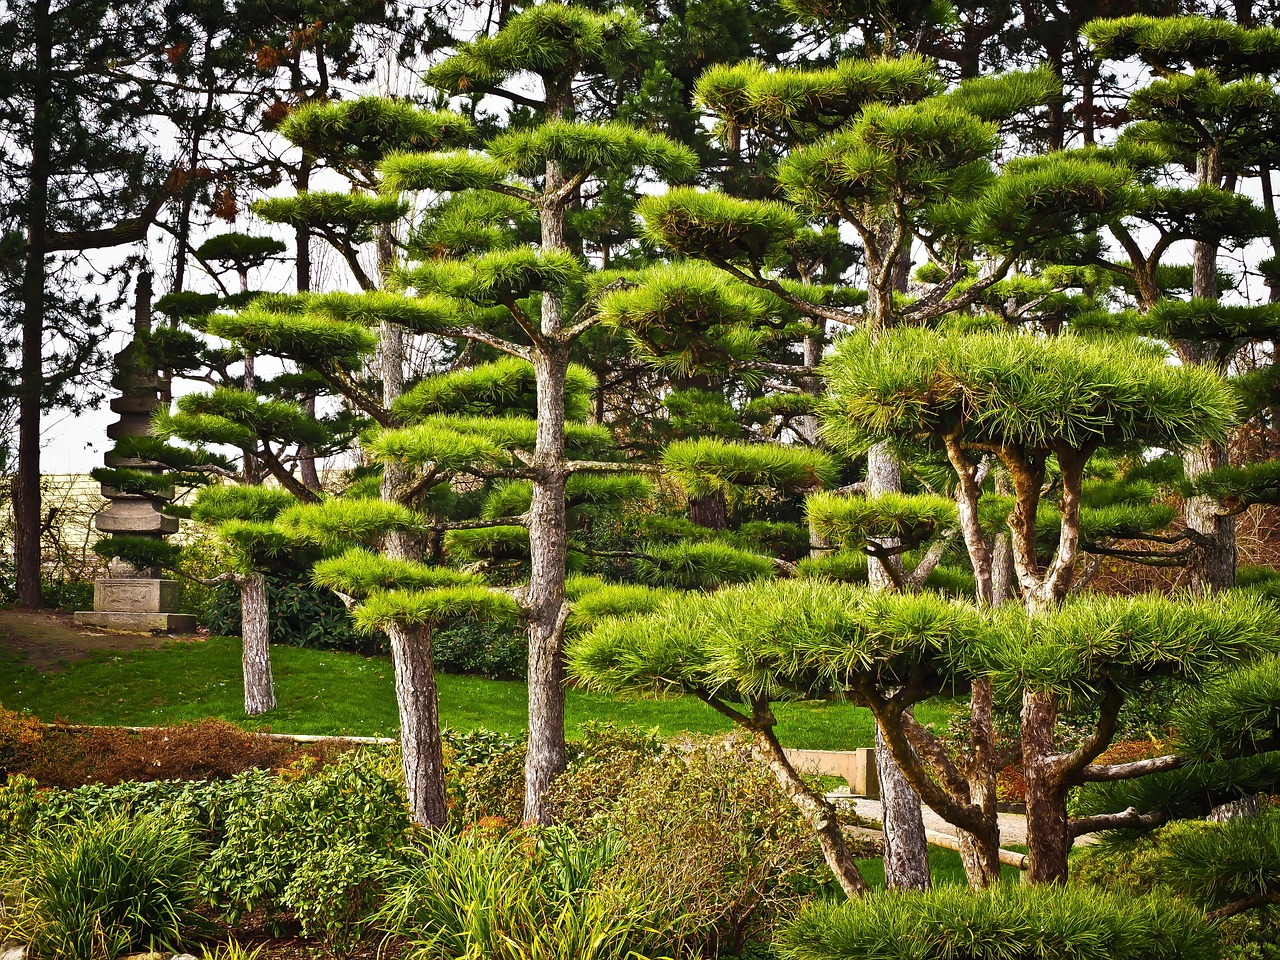 Japanese Yew Trees